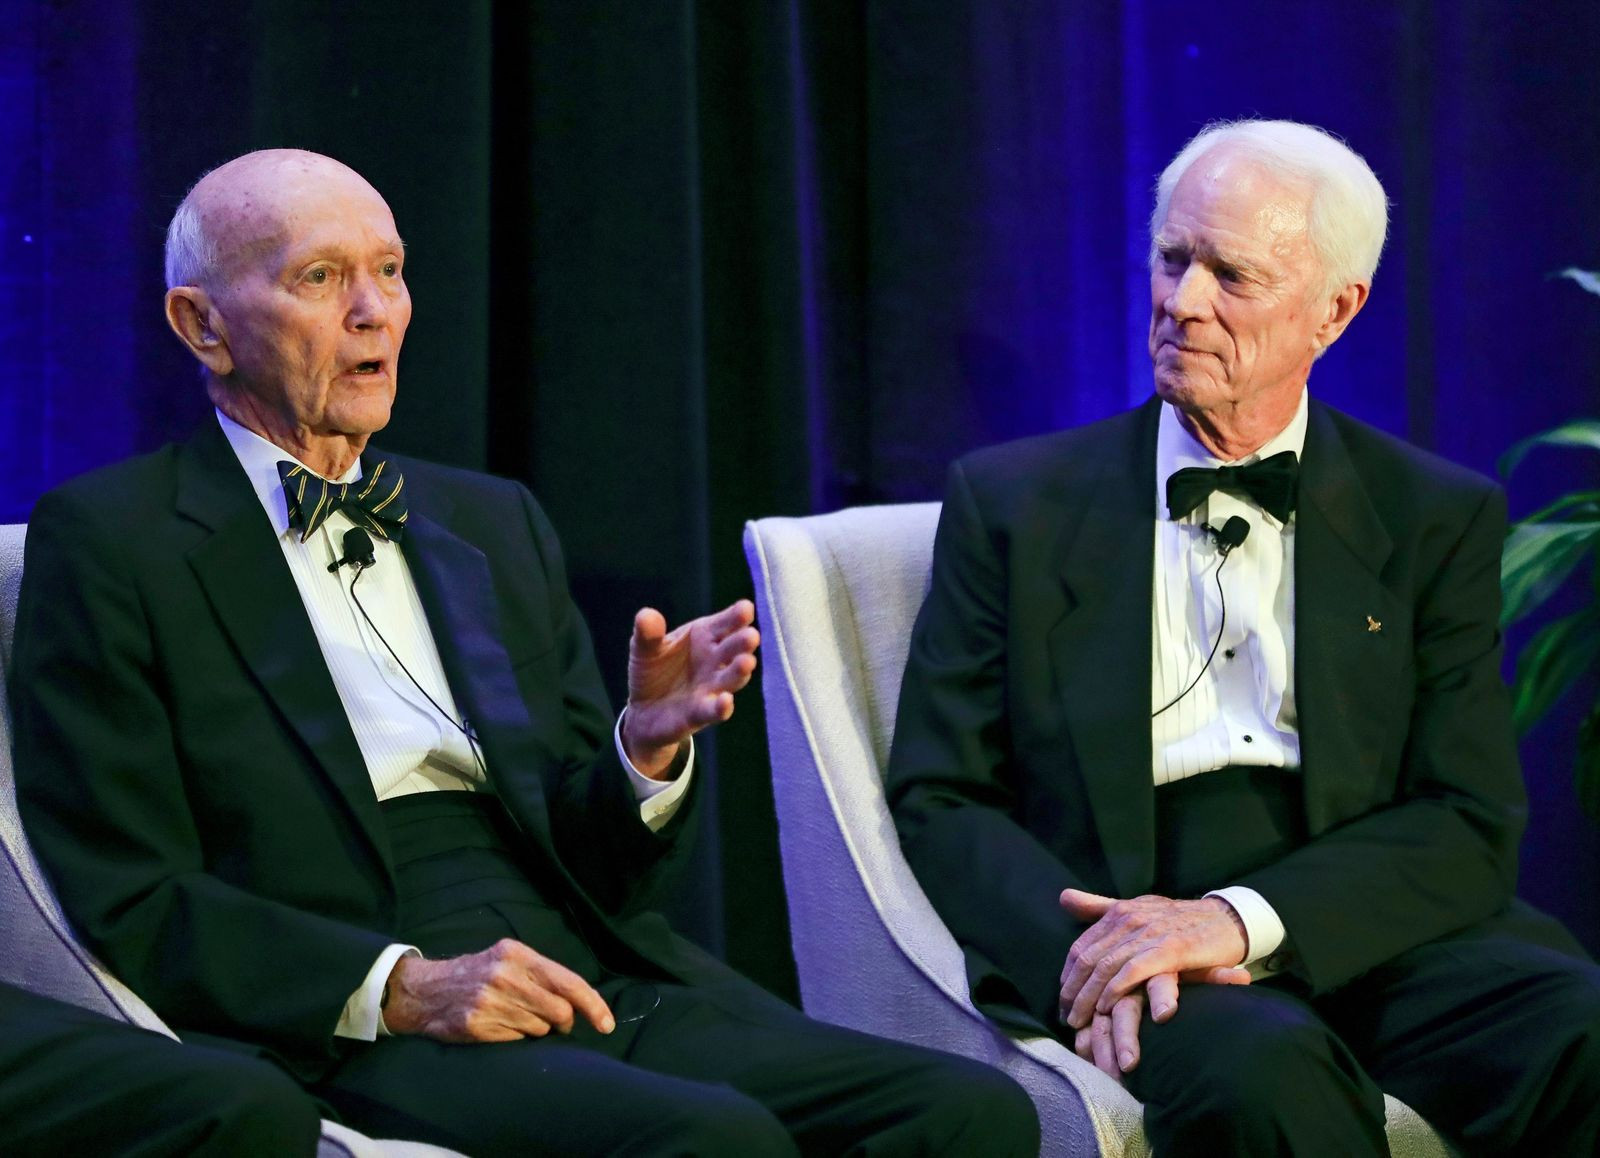 Apollo 11 astronaut Mike Collins, left, makes comments as Apollo 9 astronaut Rusty Schweickart listens during a news conference Tuesday, July 16, 2019, in Cocoa Beach, Fla. (AP Photo/John Raoux)